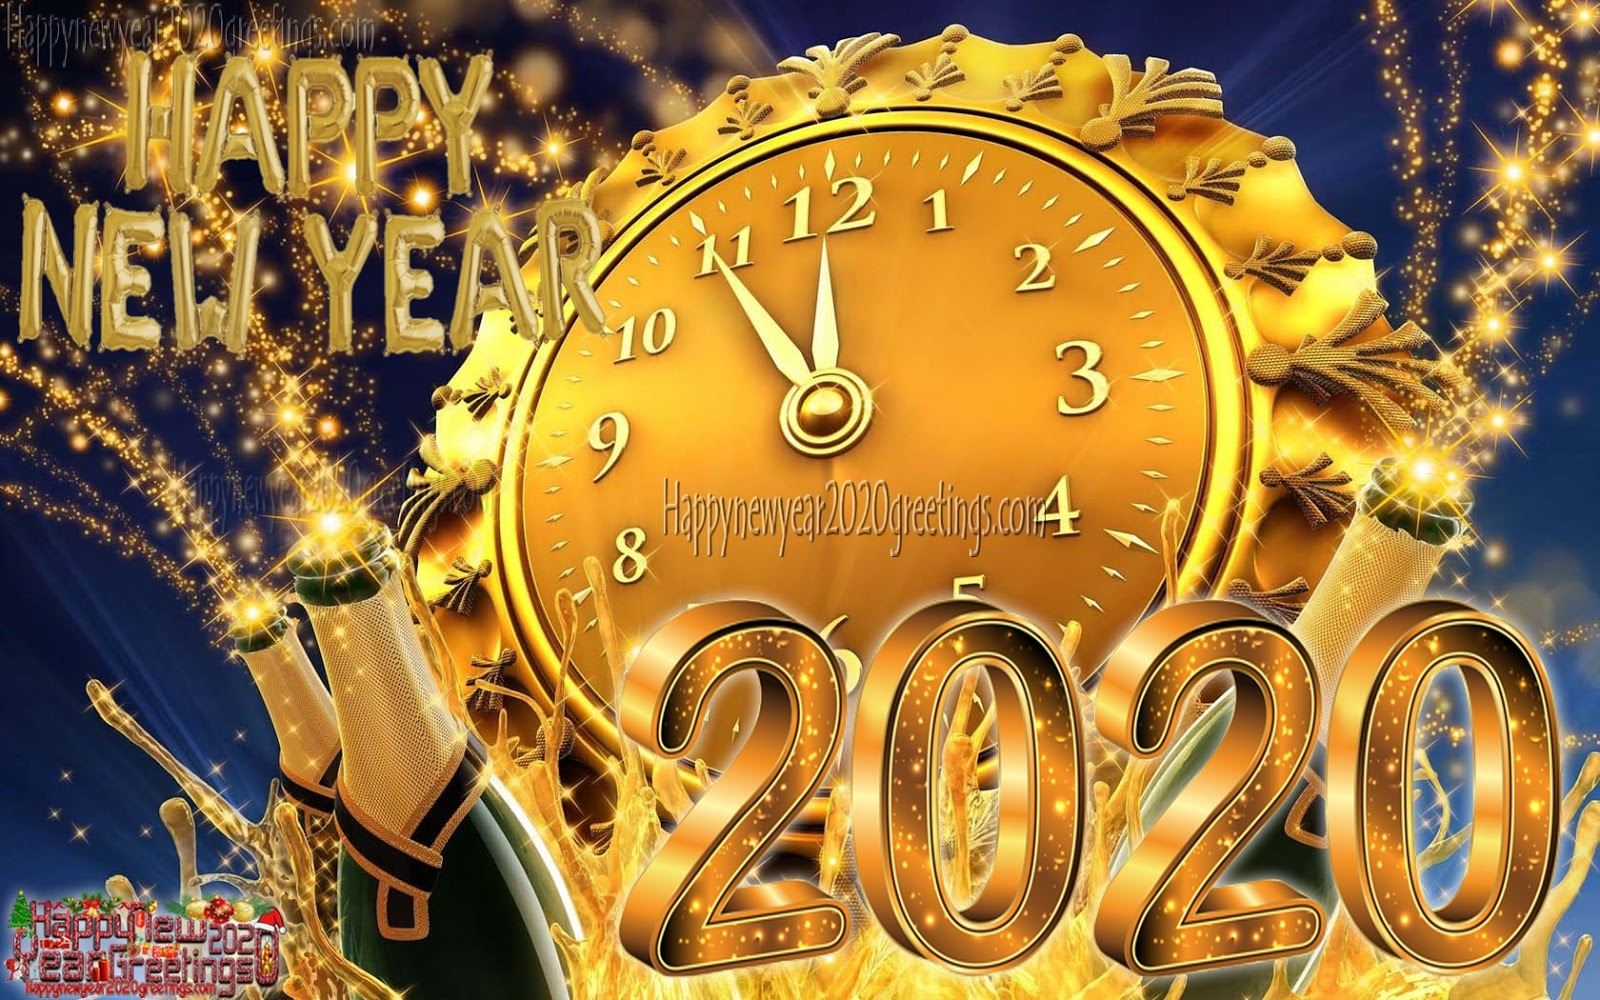 Happy New Year 2020 Images HD 1080p   New Year 2020 Ultra HD 4K 1600x1000